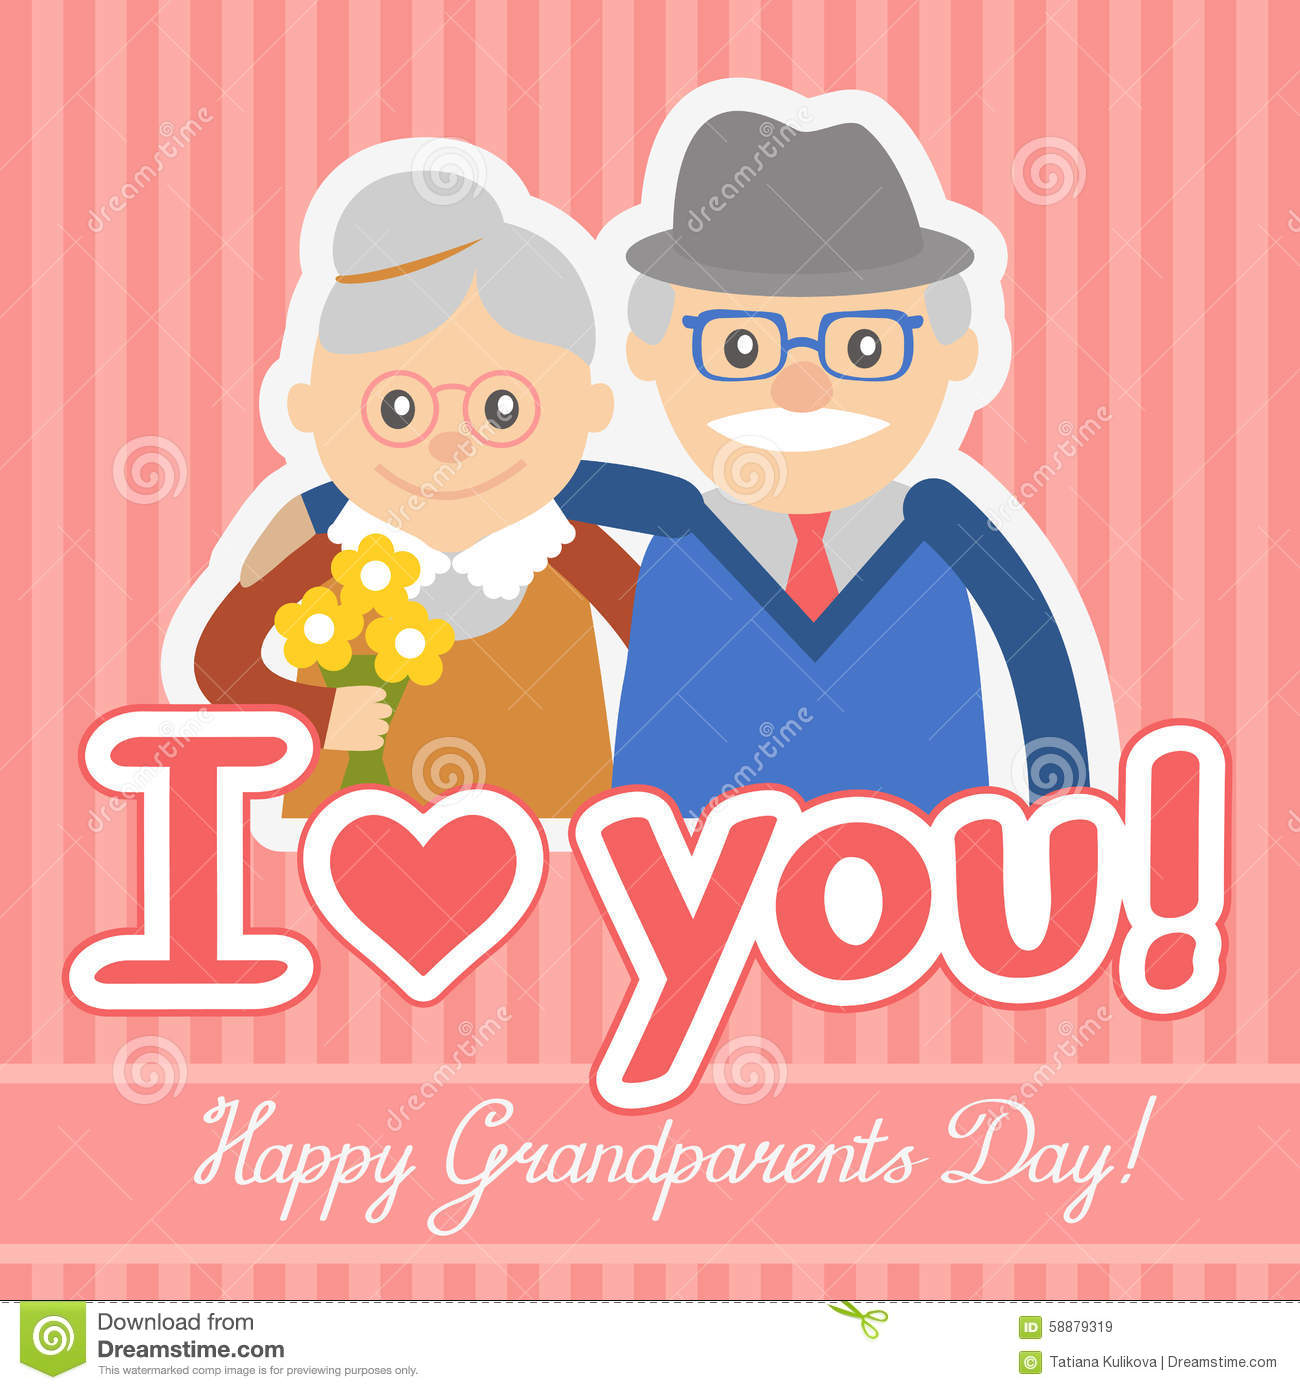 Advance happy grandparents day 2017 wishes imagesdppiccards grandparents day 2017 in advance whatsapp dp kristyandbryce Gallery